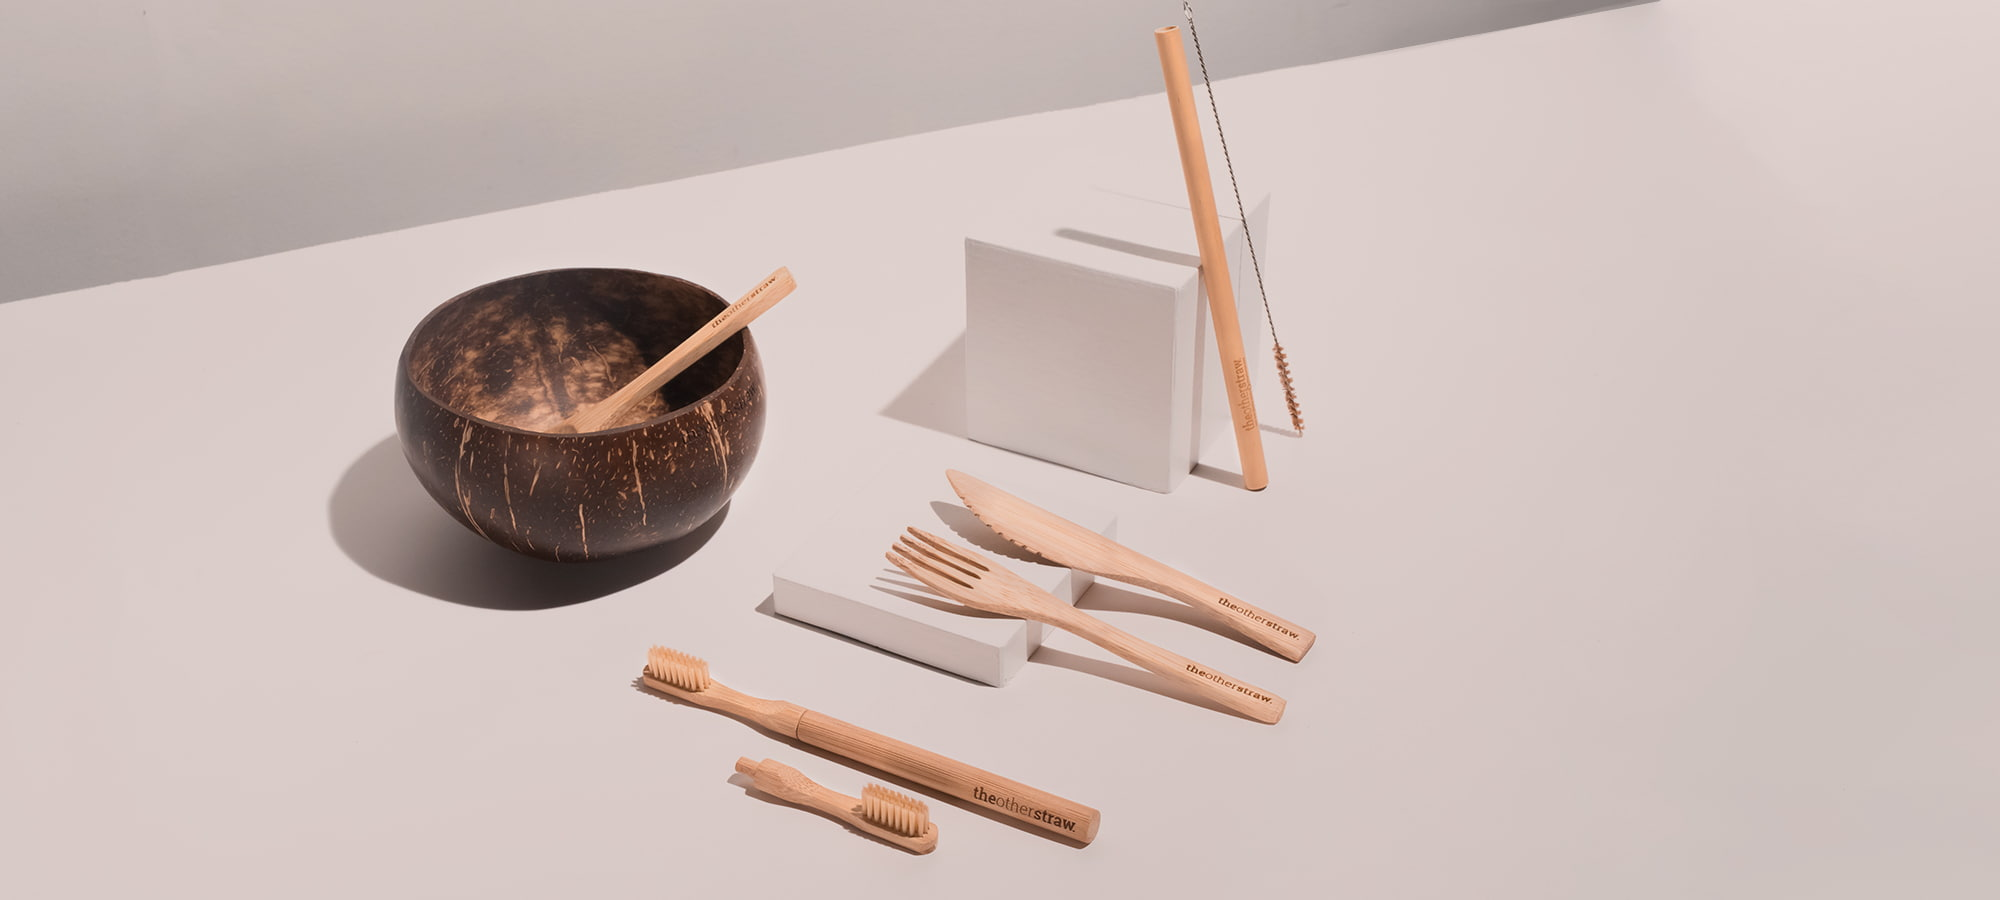 bamboo straw, bamboo cutlery, coconut bowl and bamboo toothbrush on table